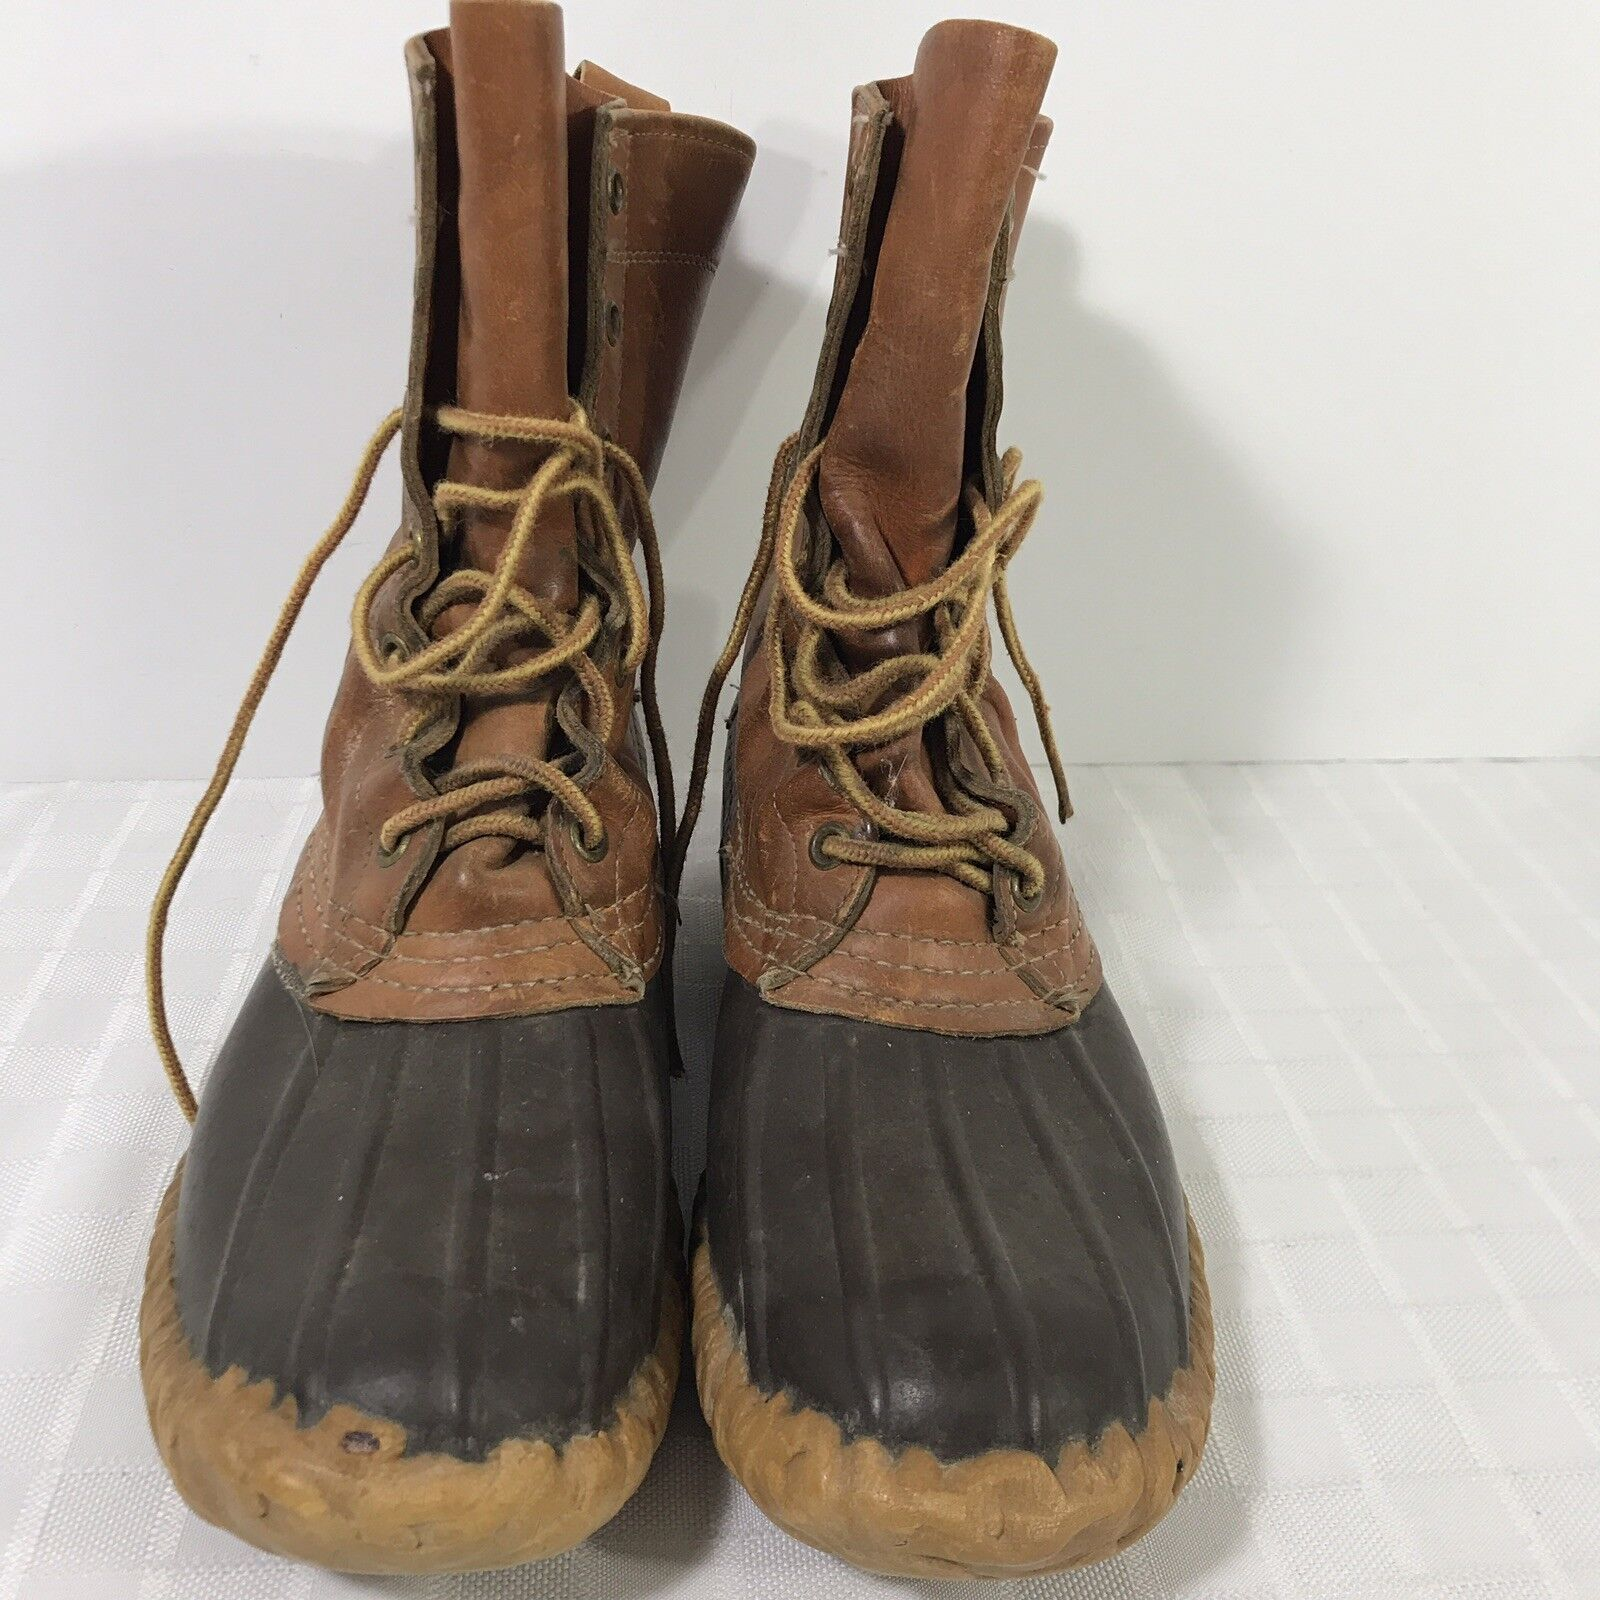 Great Vintage LL Bean Maine Hunting Duck Gum scarpe stivali Leather donna's Dimensione 7